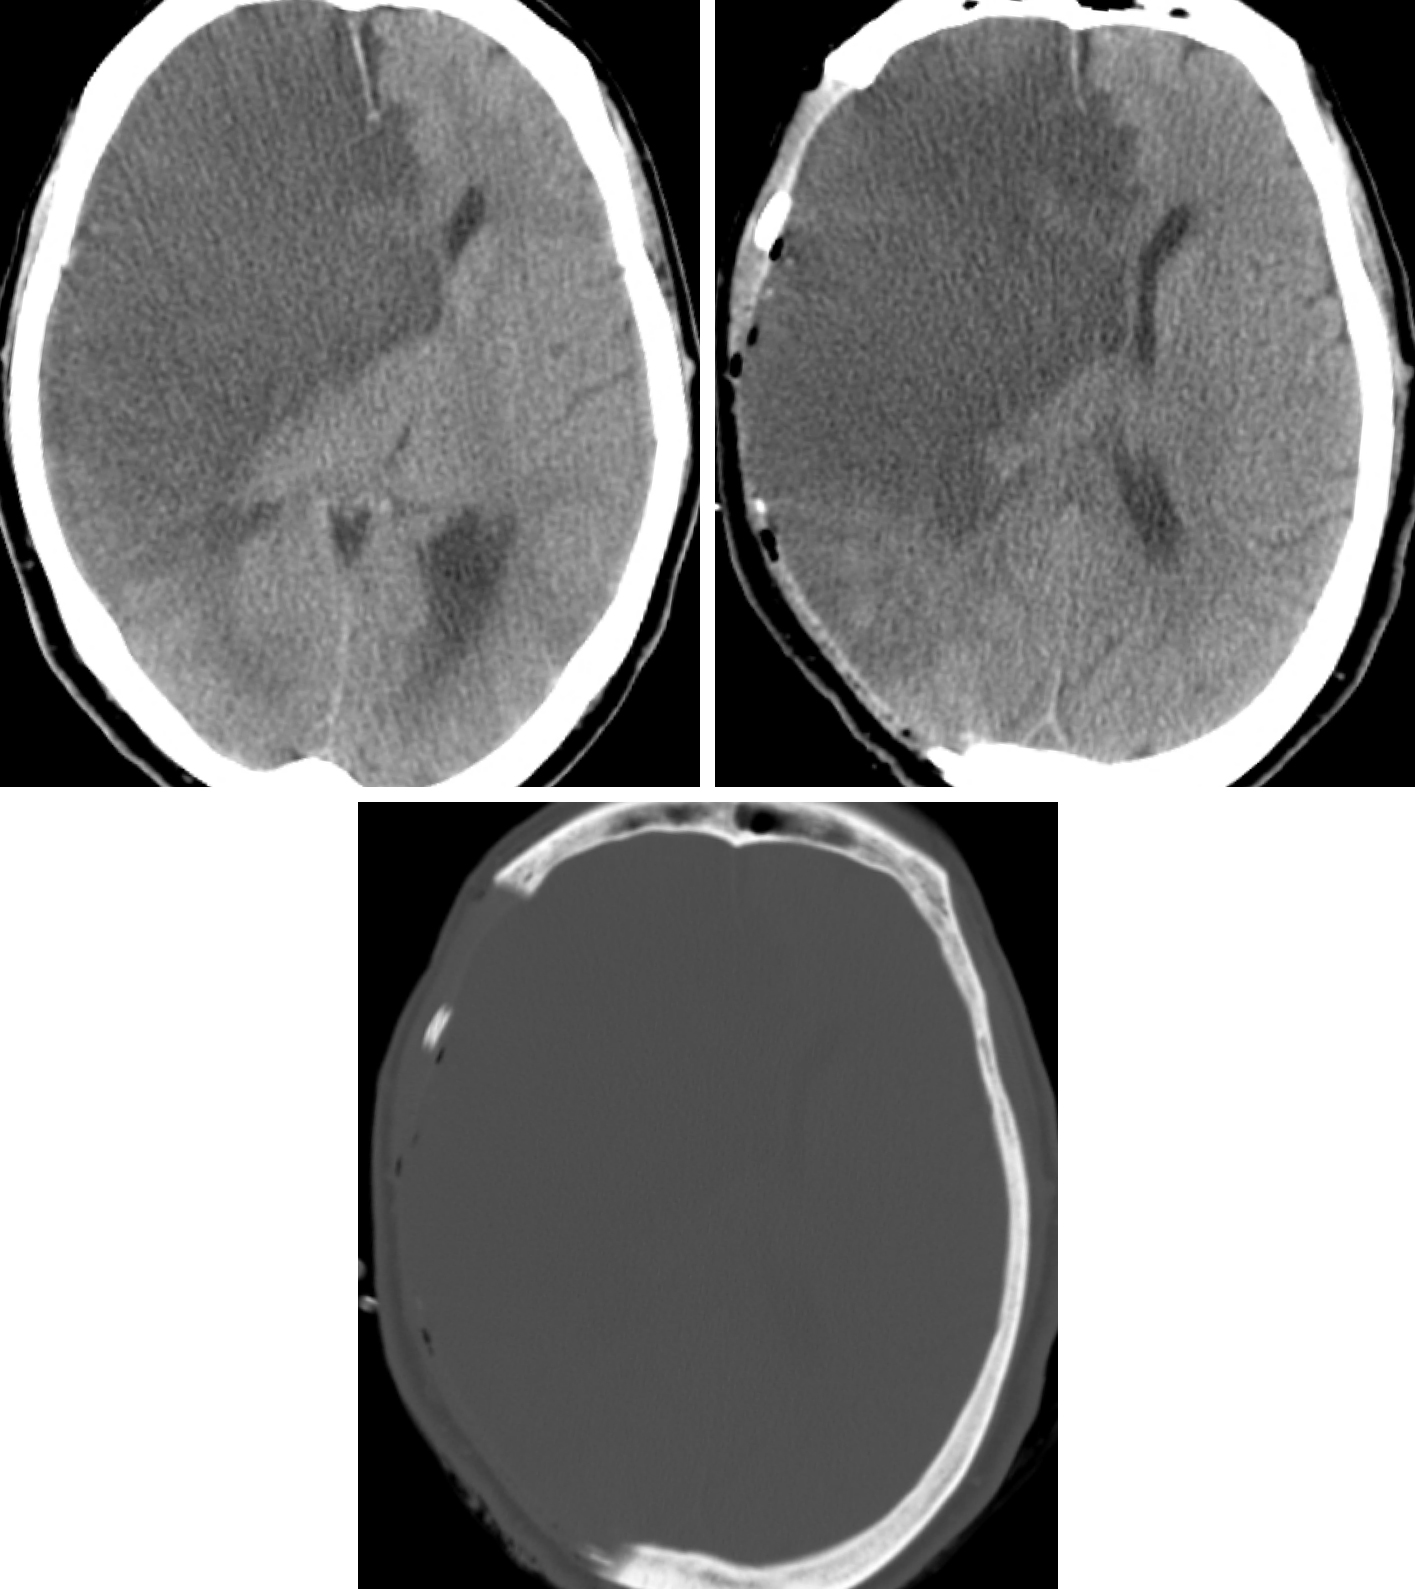 Figure 3: Preoperative (top row left) and postoperative (top row right and bottom) images show the extent of bony decompression in a patient after a middle cerebral artery stroke that affected a large part of the hemisphere.